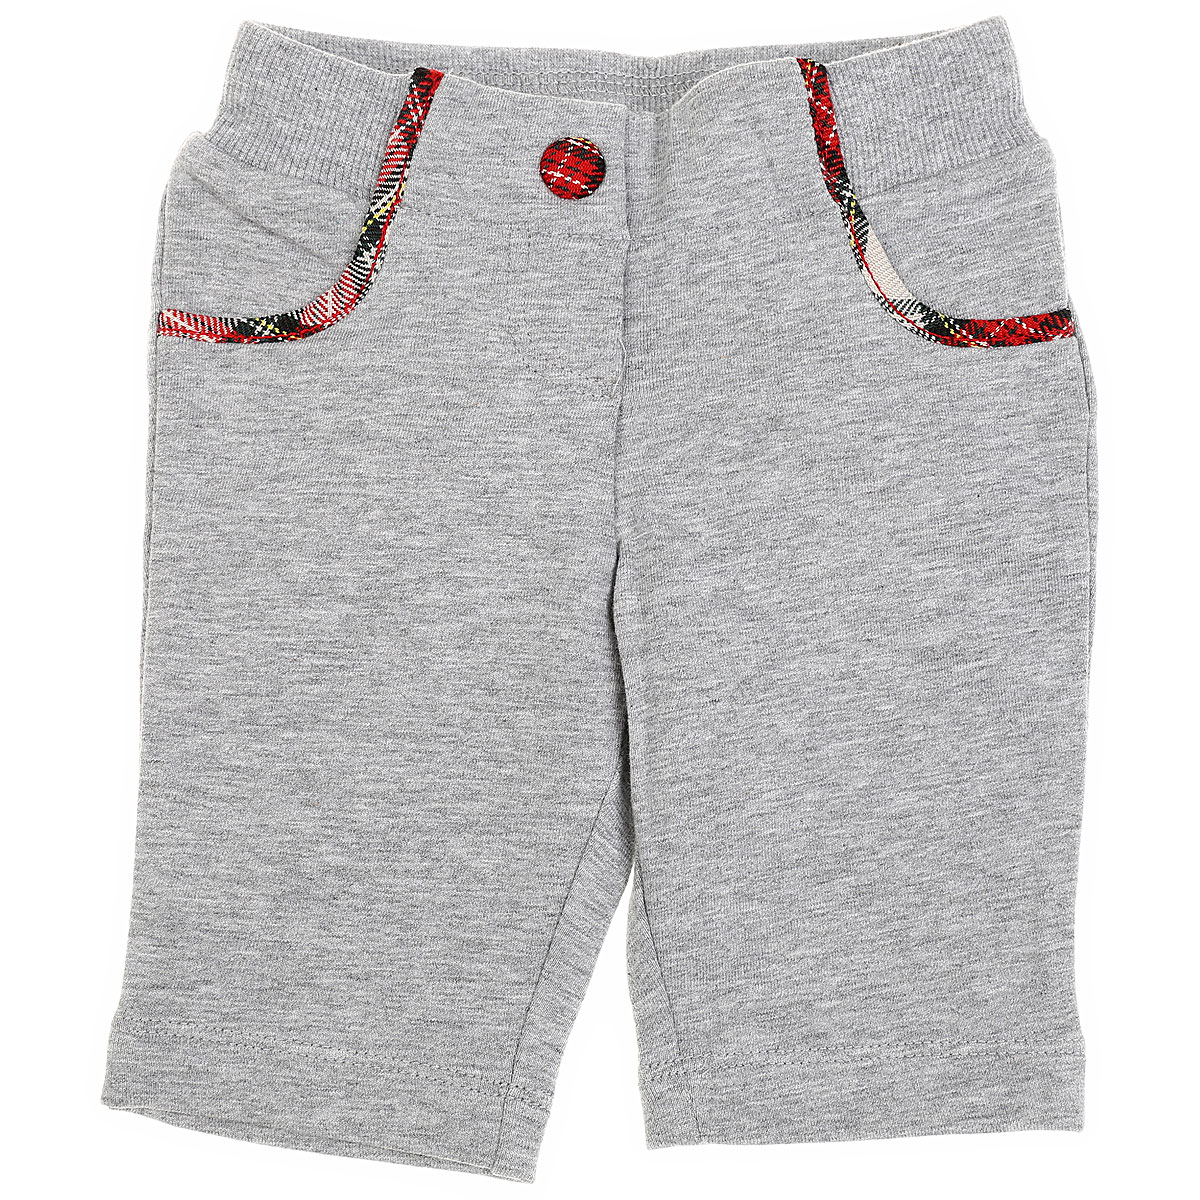 Monnalisa Baby Pants for Girls On Sale in Outlet, Grey, Cotton, 2019, 6M 9M